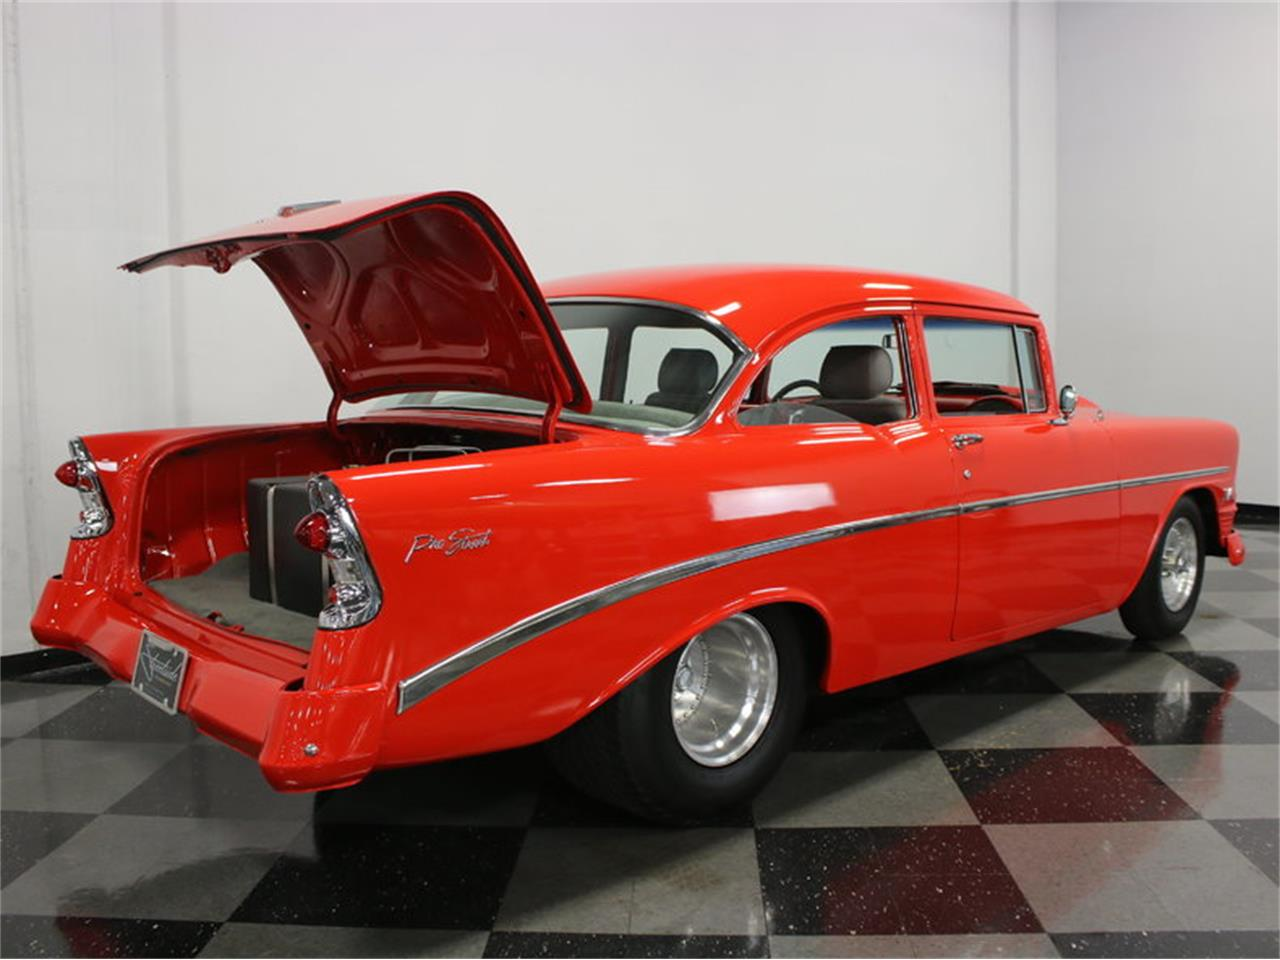 Large Picture of '56 Chevrolet 210 - $57,995.00 Offered by Streetside Classics - Dallas / Fort Worth - JAEY